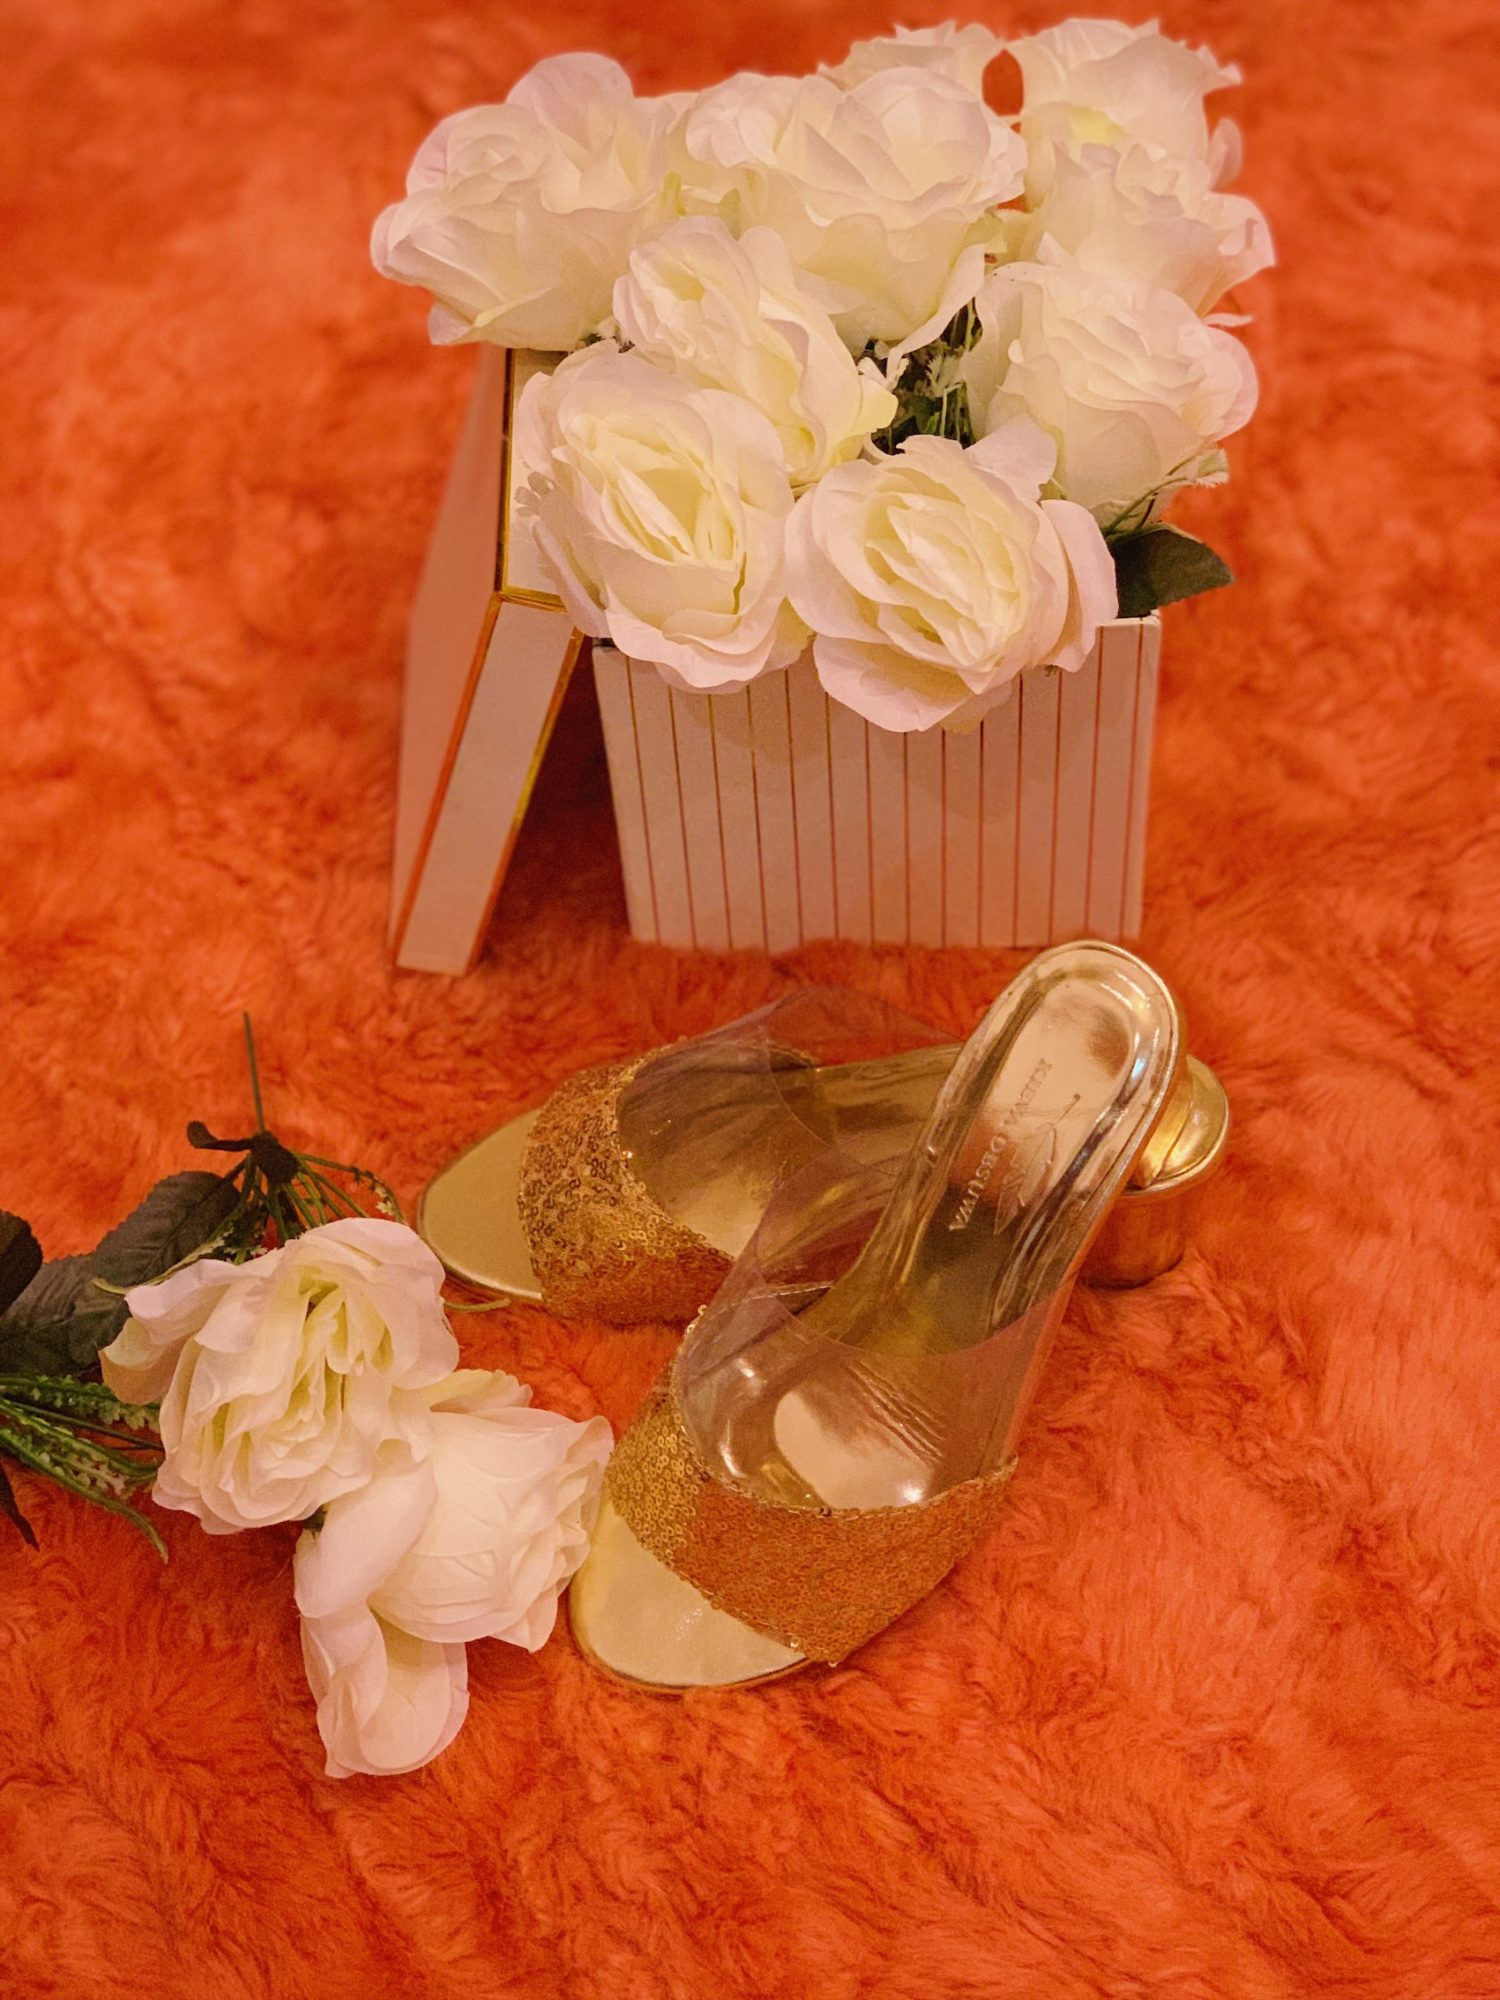 Mix Style & Comfort, You'll Get This New Footwear Collection by Kieva Desuwa